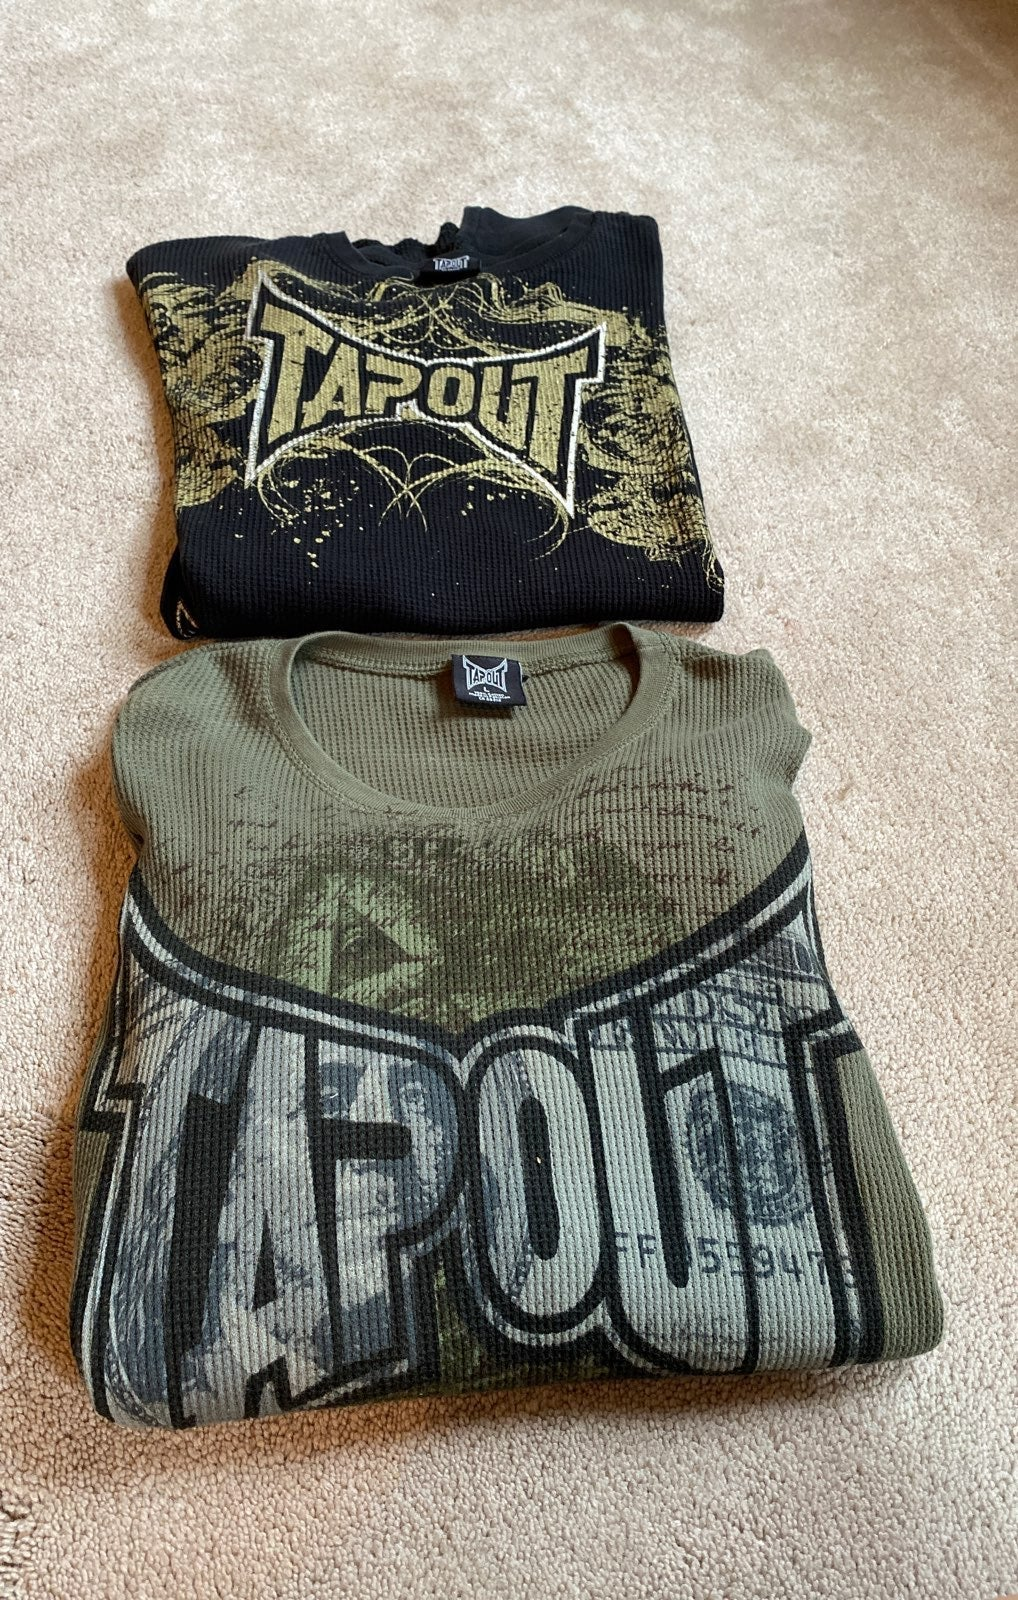 2 TapouT jerseys